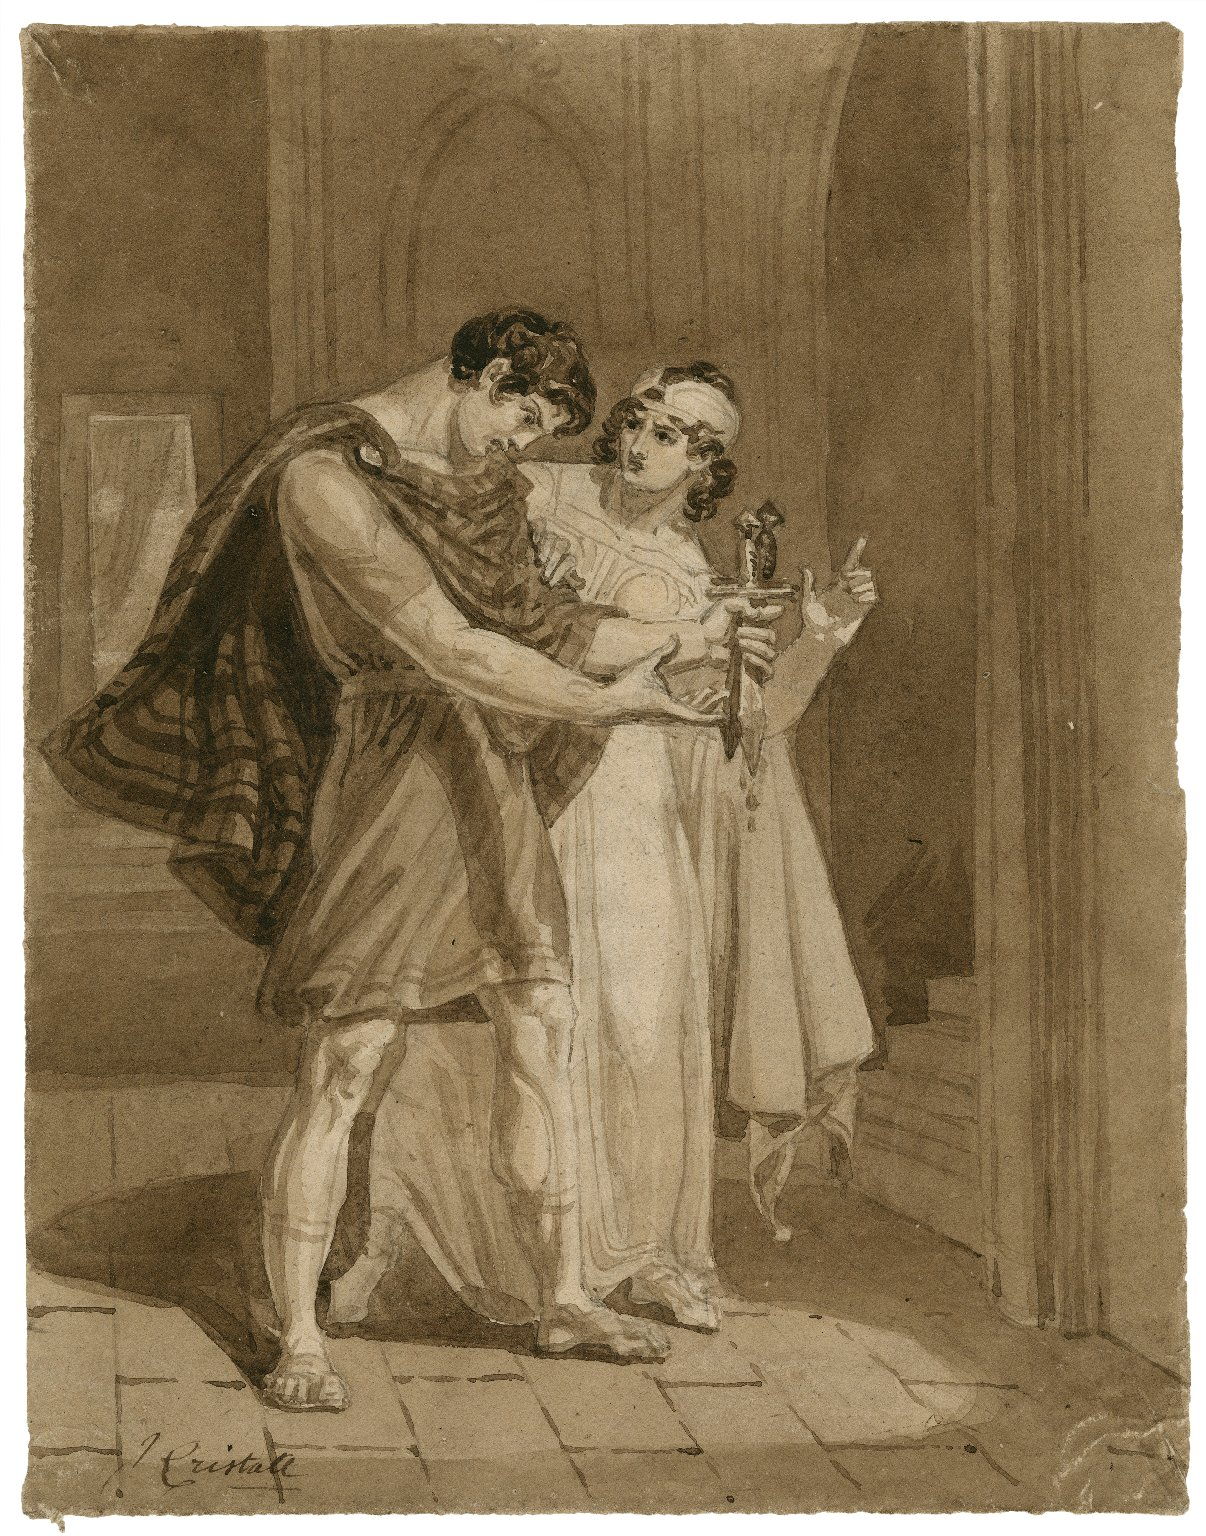 [Macbeth, II, 2, Macbeth and his wife after the murder of Duncan] [graphic] / J. Cristall.